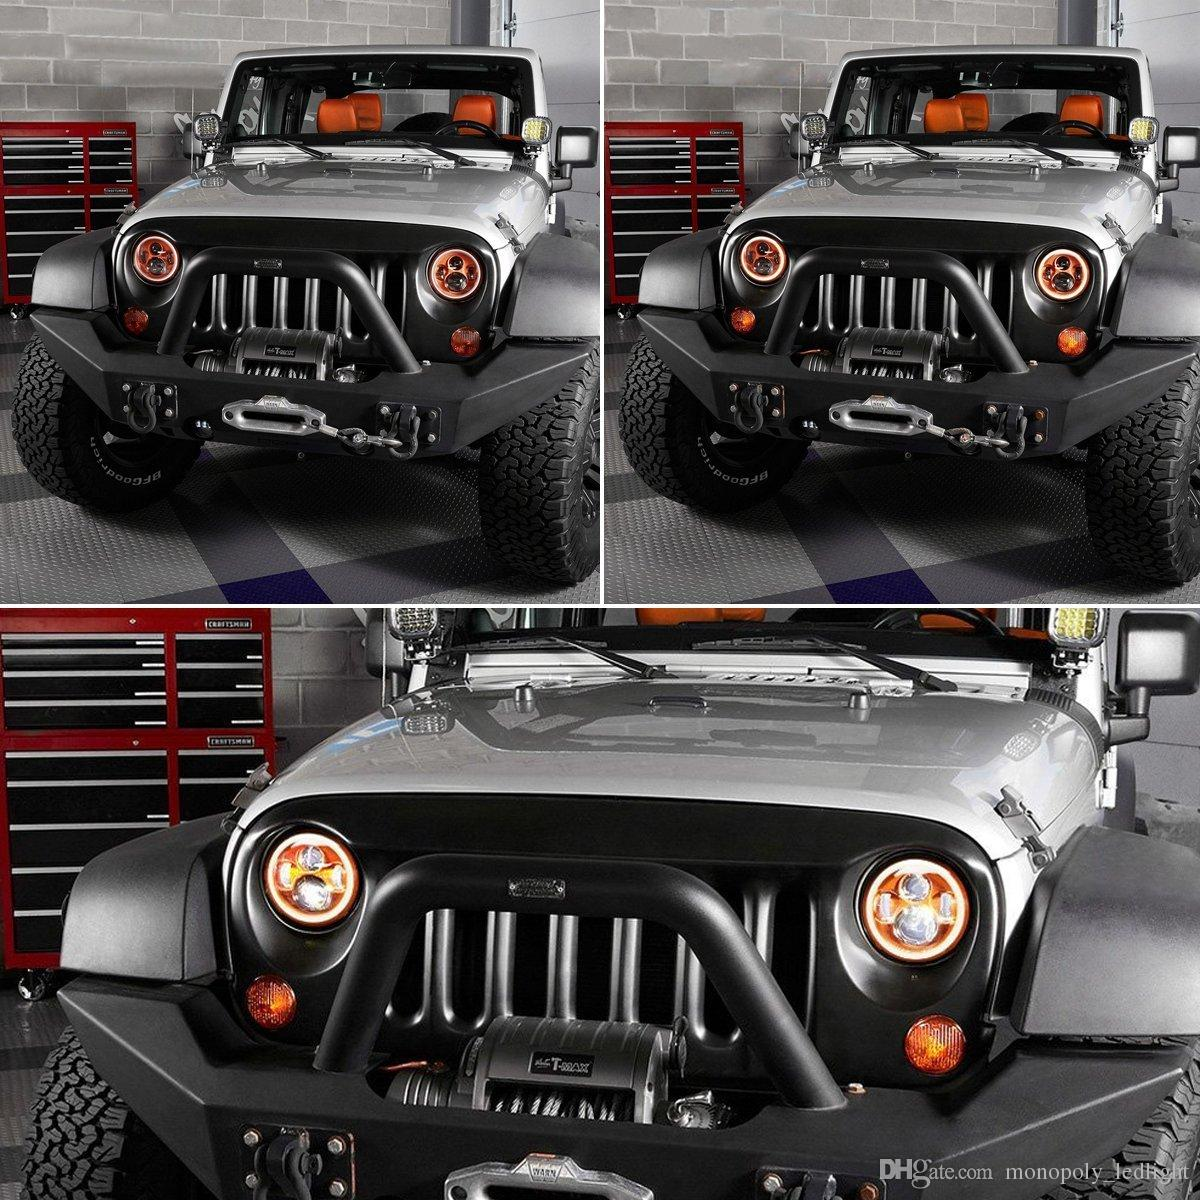 """7"""" Daymaker LED Halo Ring Angel Eyes Headlight For JEEP, Around Orange Projector Light Wrangler Replacement Eagle Light Projection Headligh"""